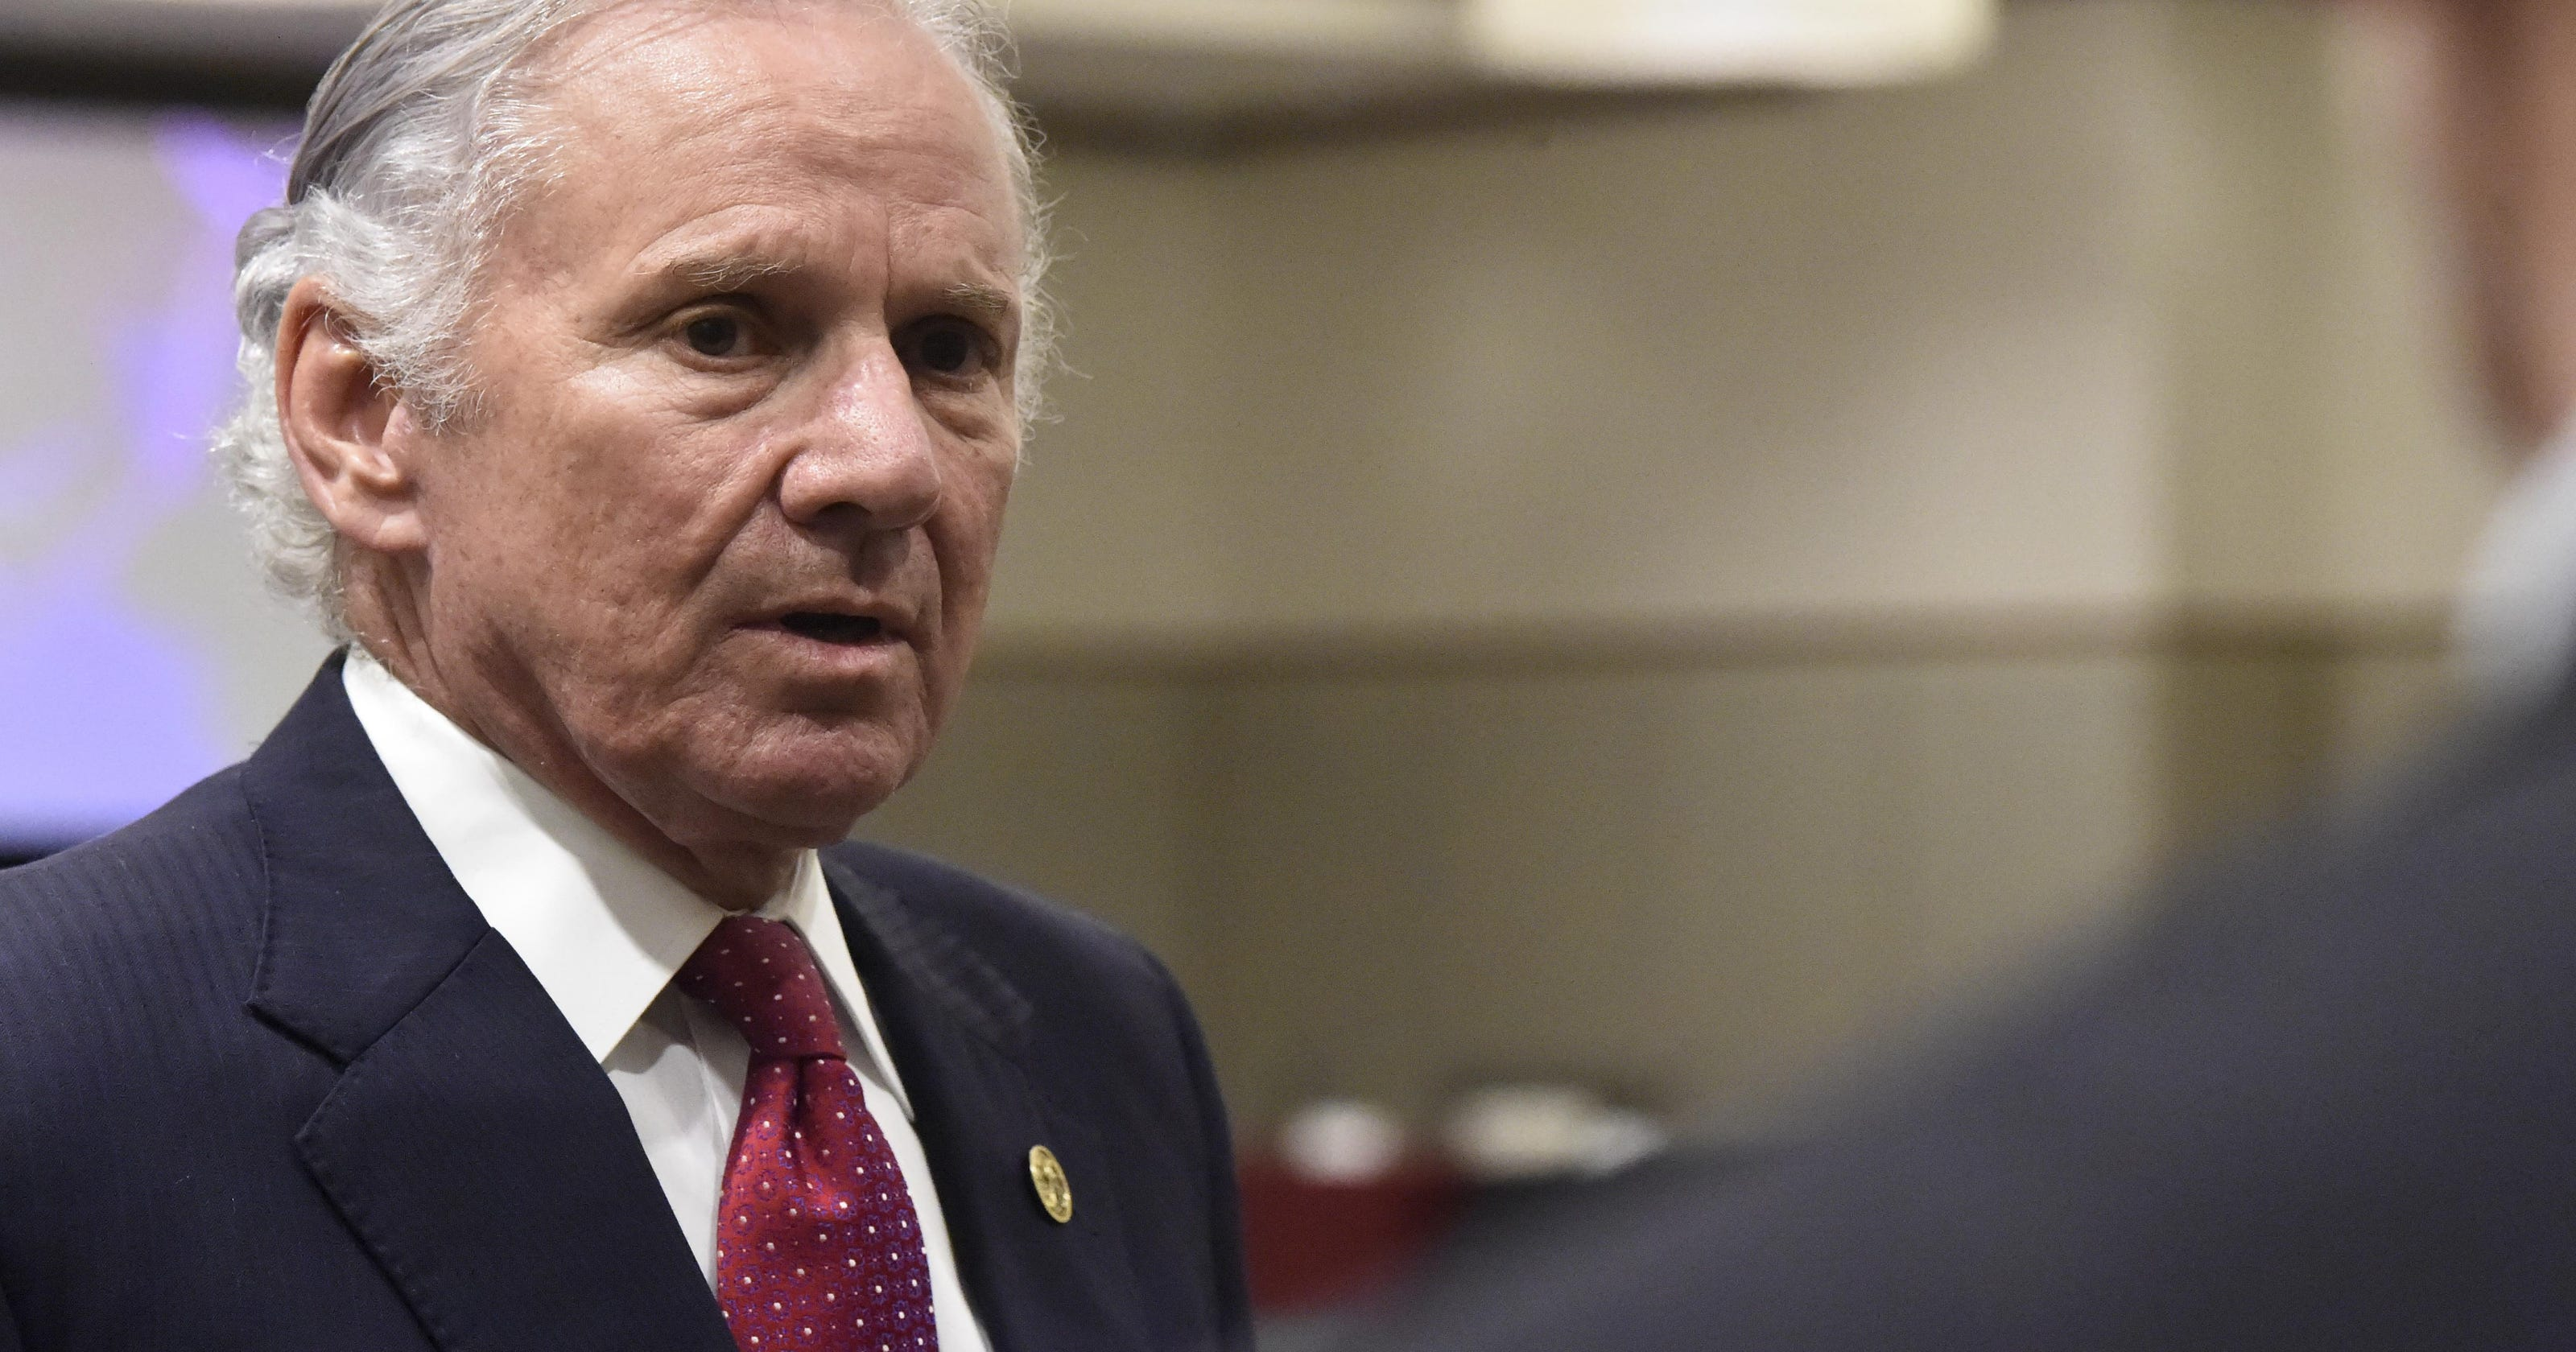 21 Republican governors attack Biden's COVID-19 stimulus bill for 'penalizing' their states